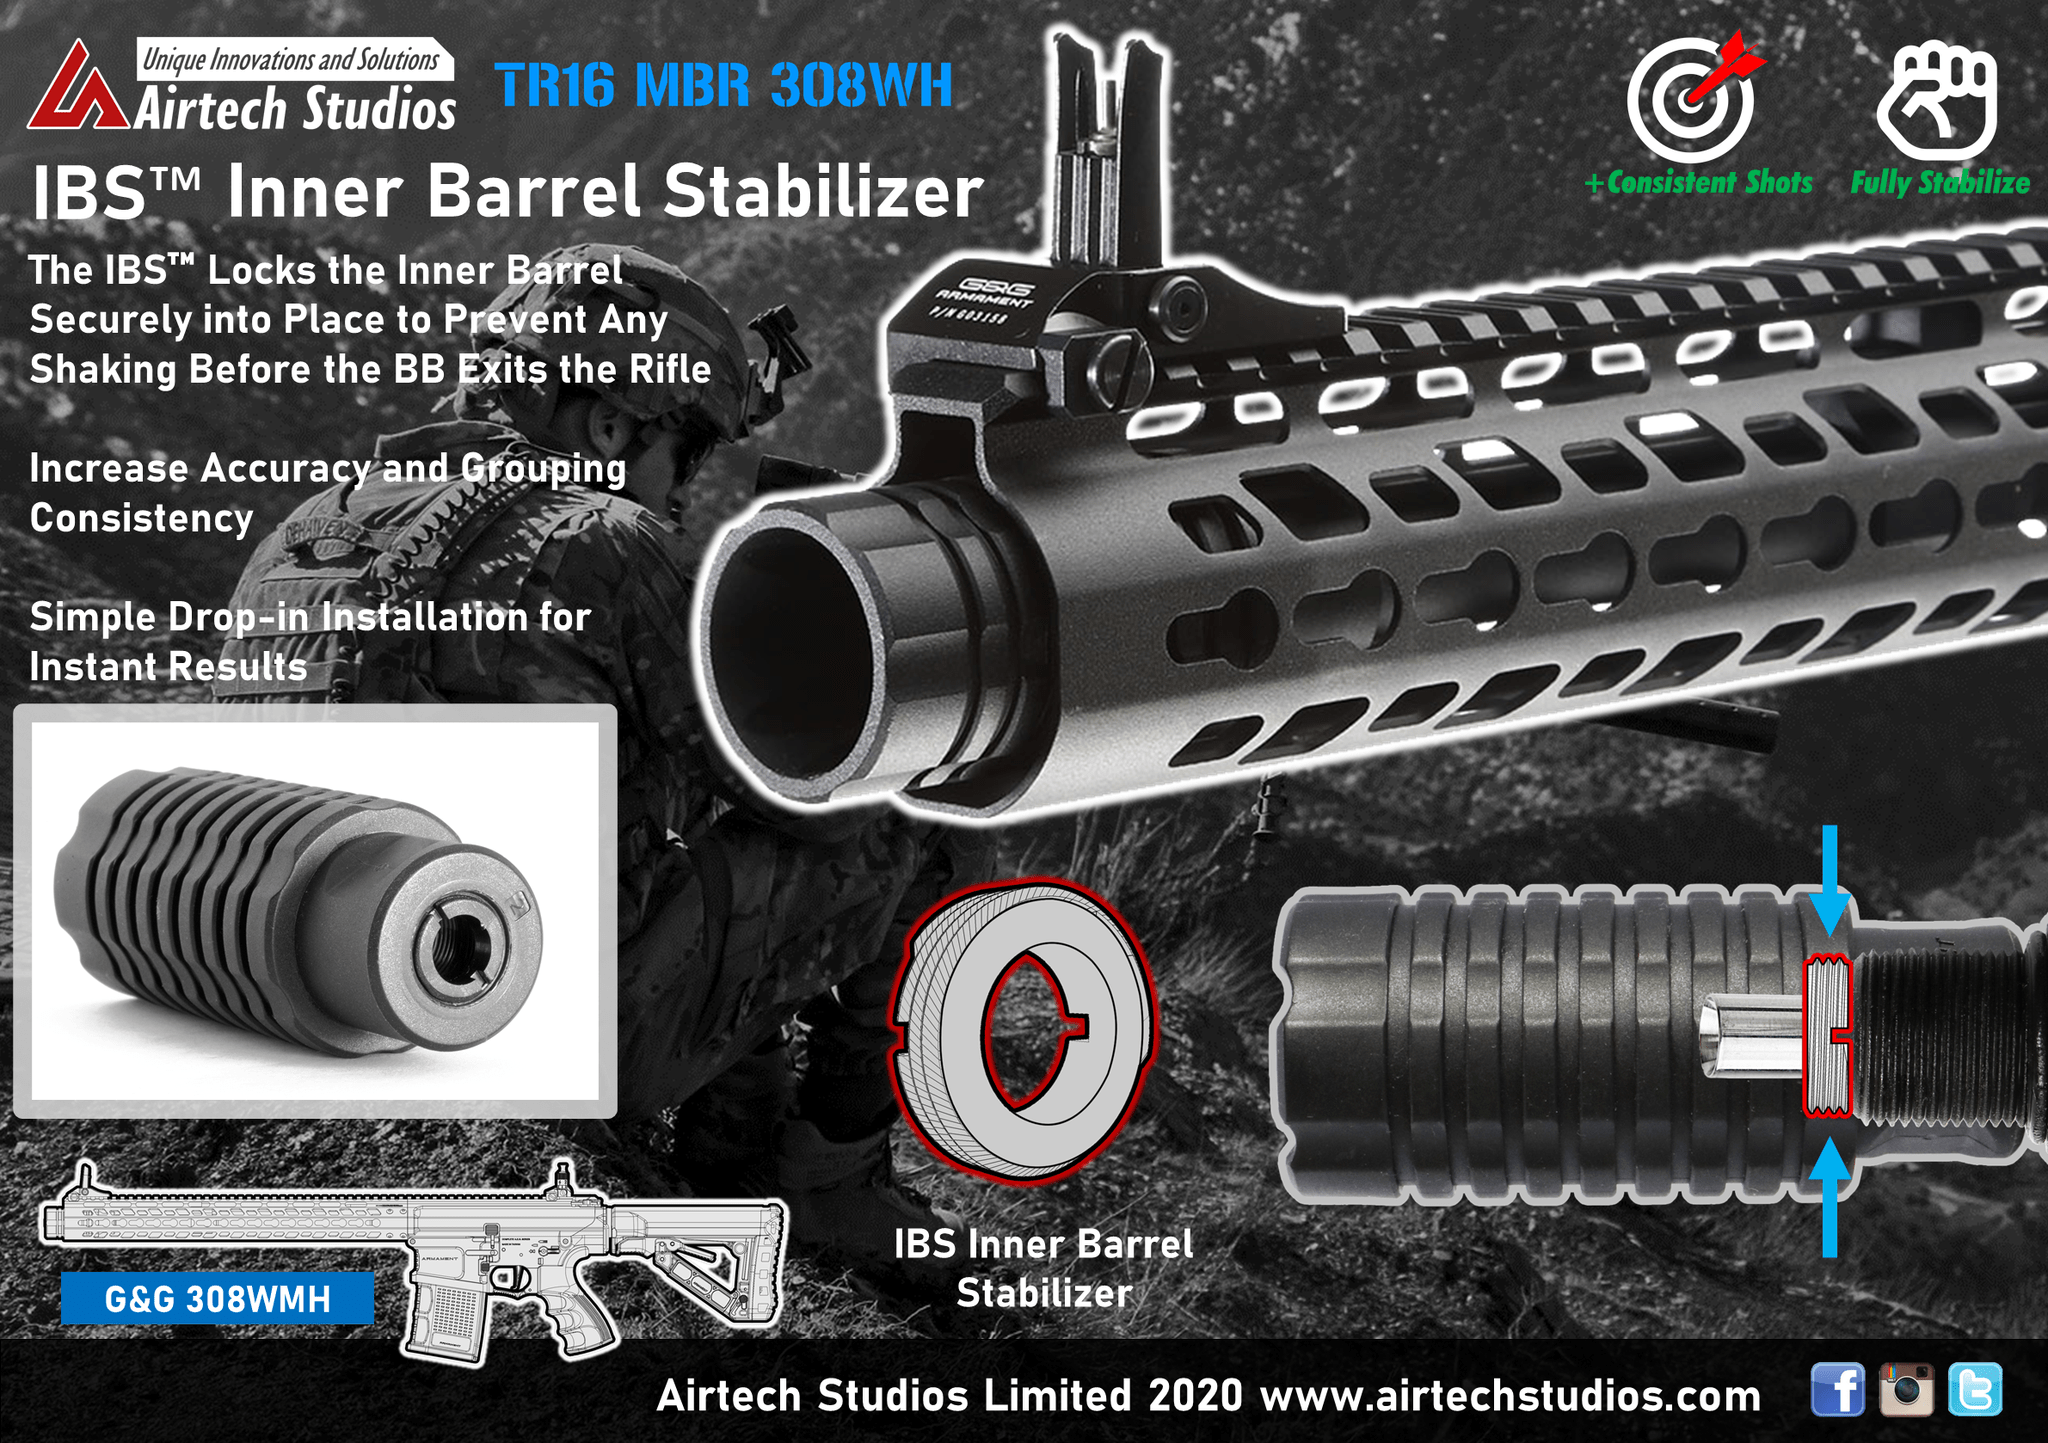 Airtech INNER BARREL STABILIZER G&G 308 TR16 MBR product image